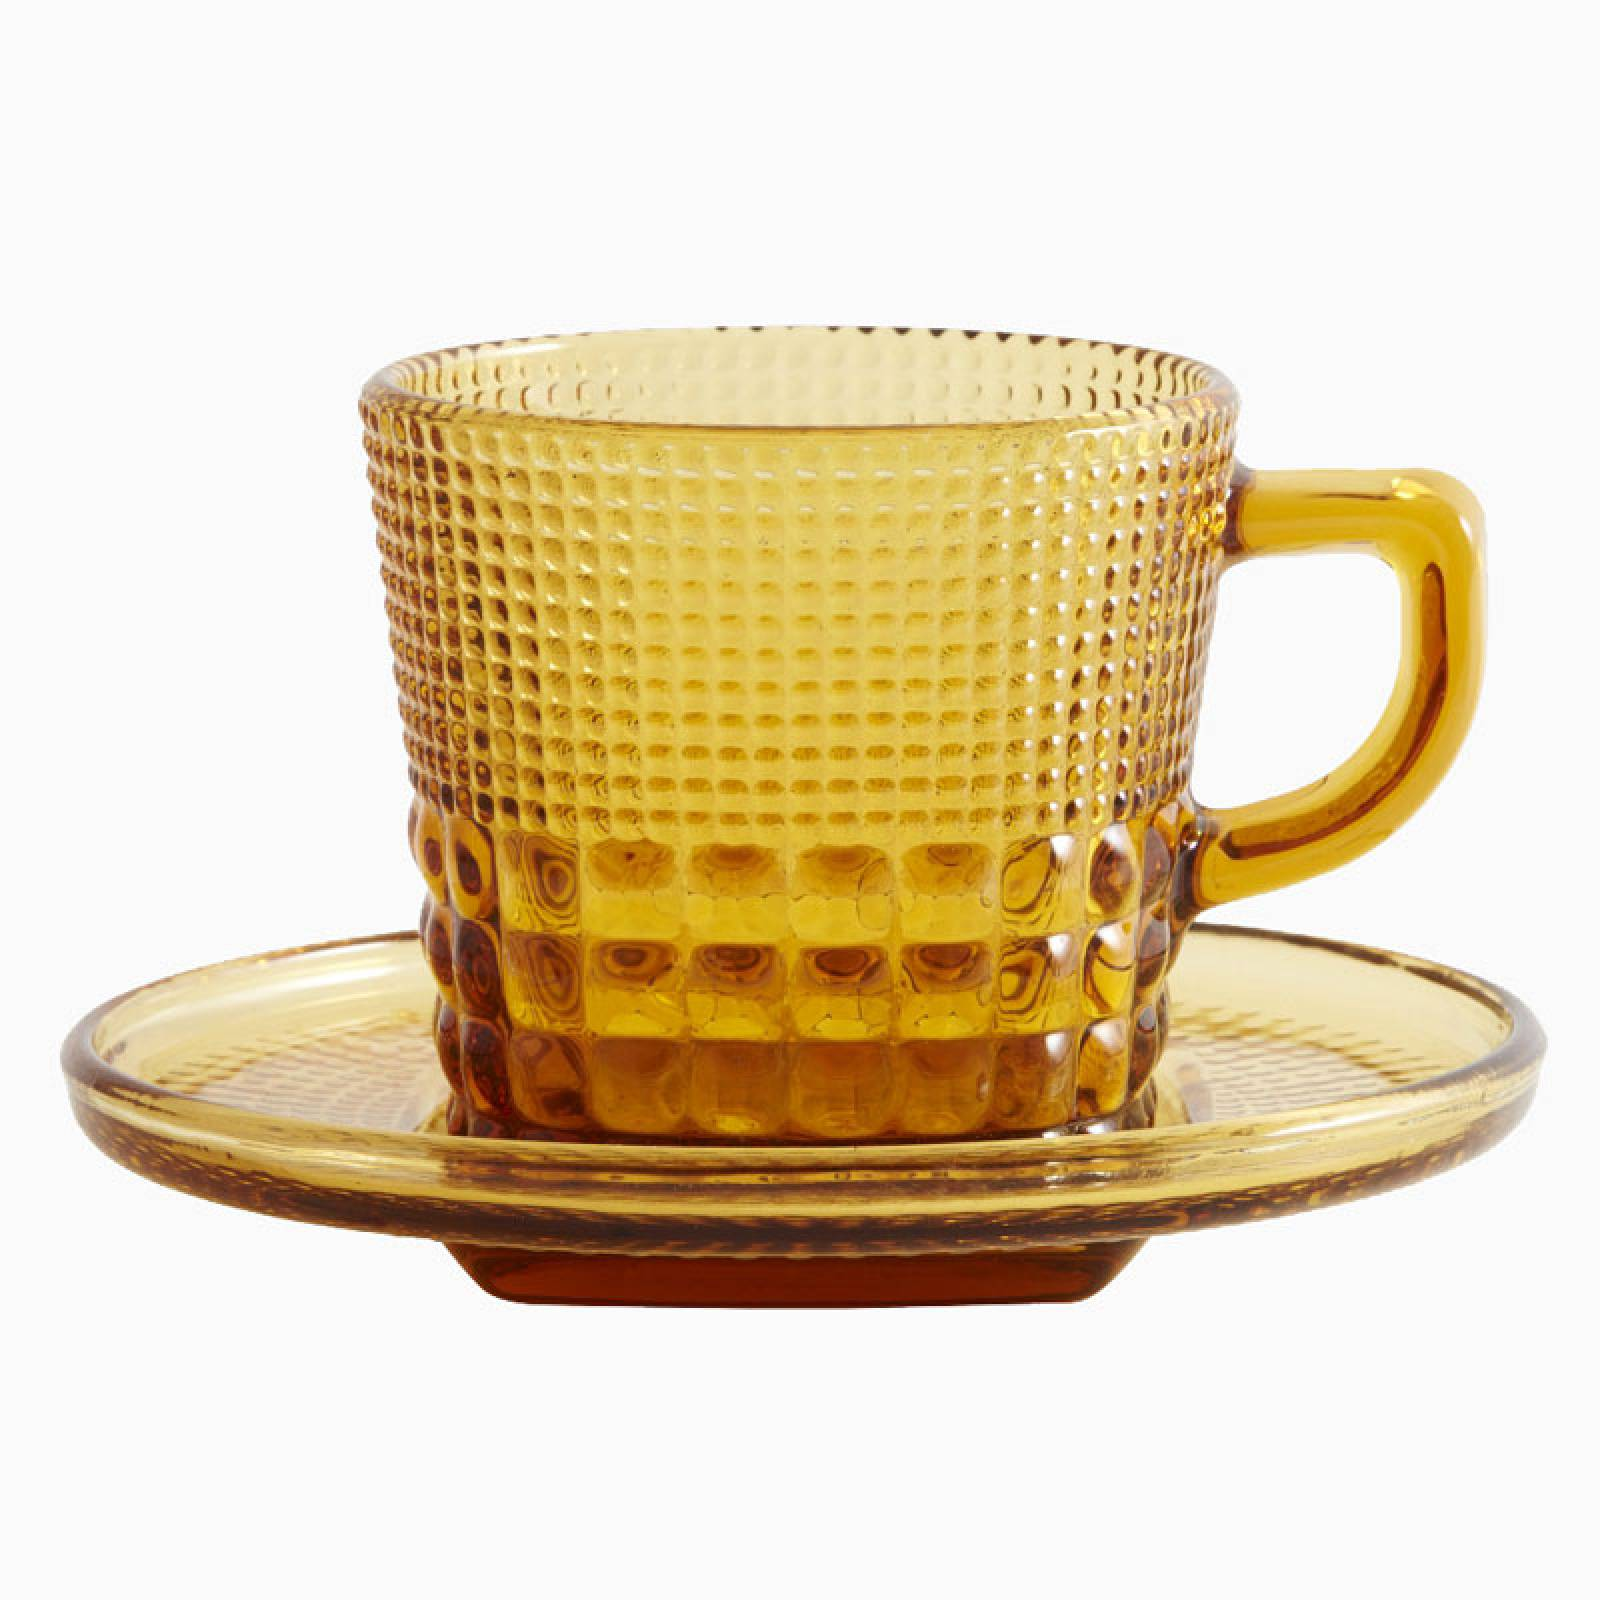 Textured Glass Cup And Saucer - Amber thumbnails